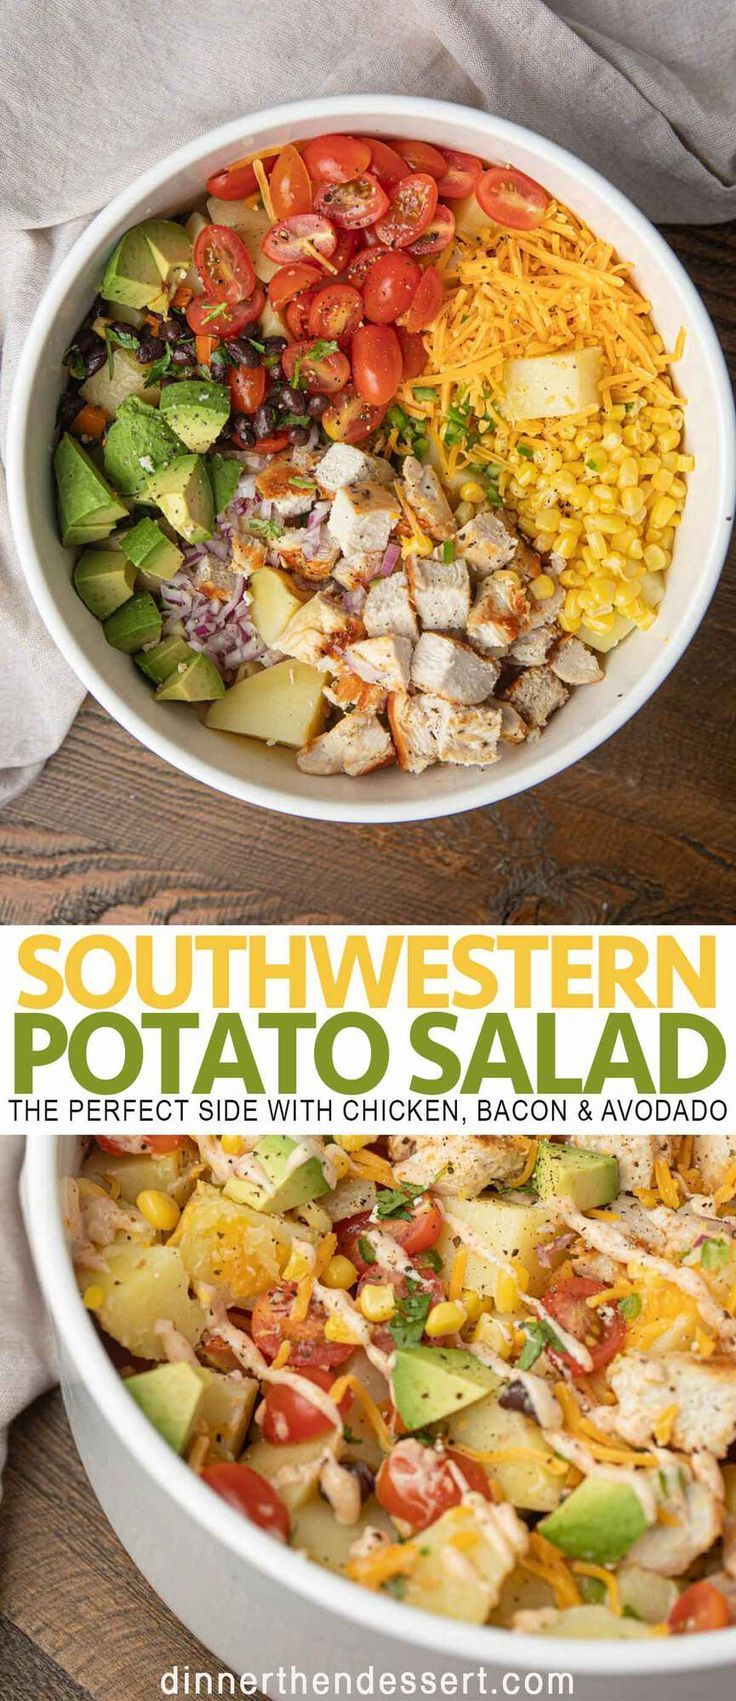 Southwestern potato salad is a delicious side dish to bring to your next summer cookout or BBQ.